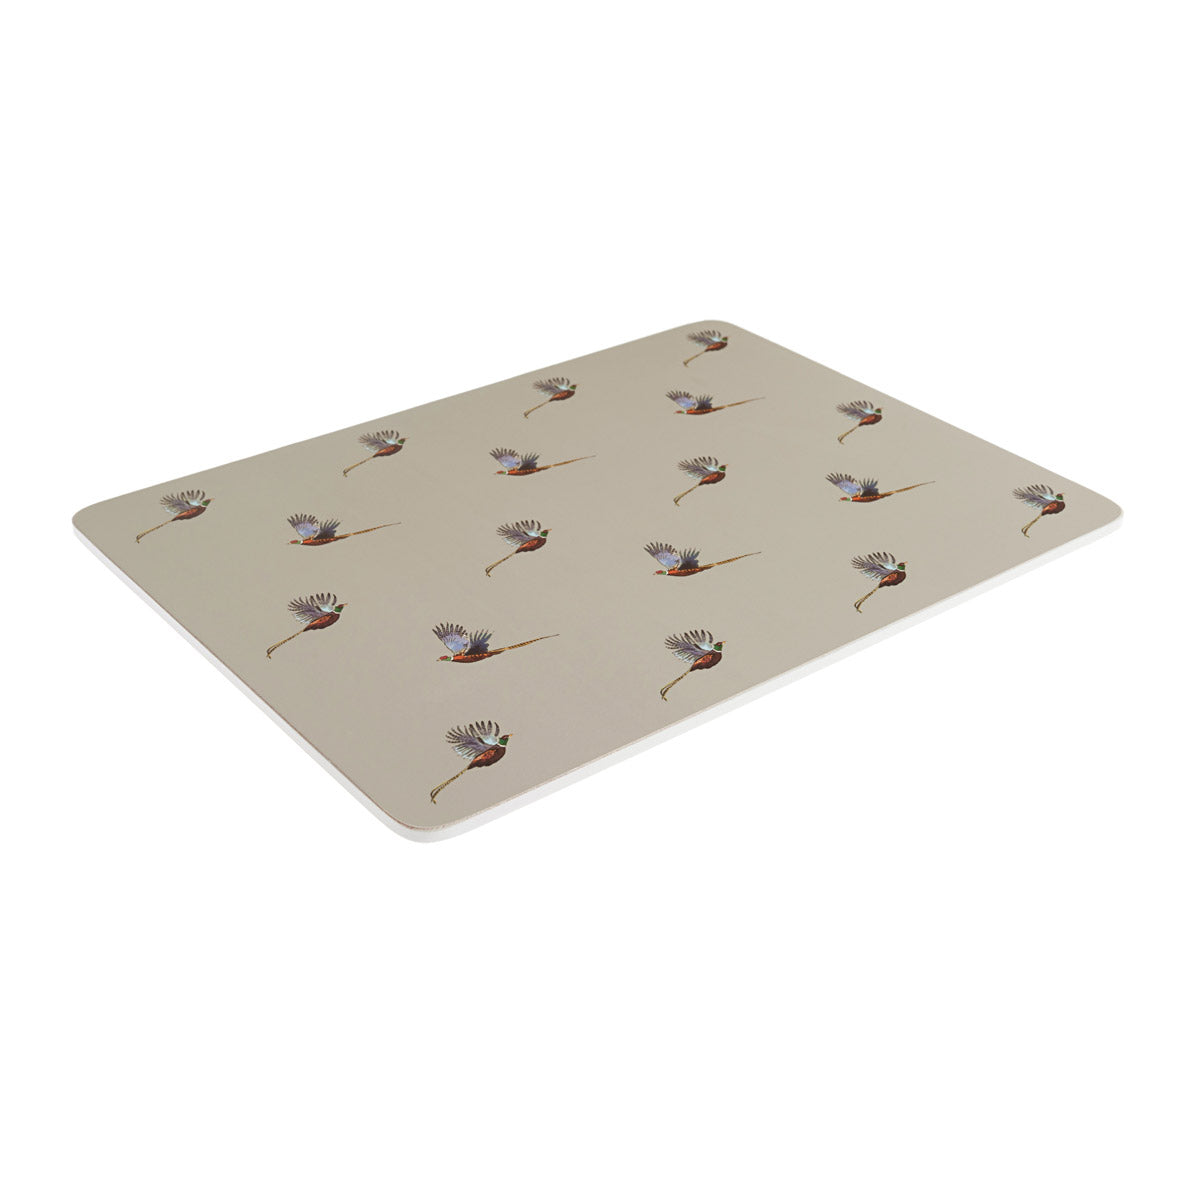 Pheasant Placemats (Set of 4)